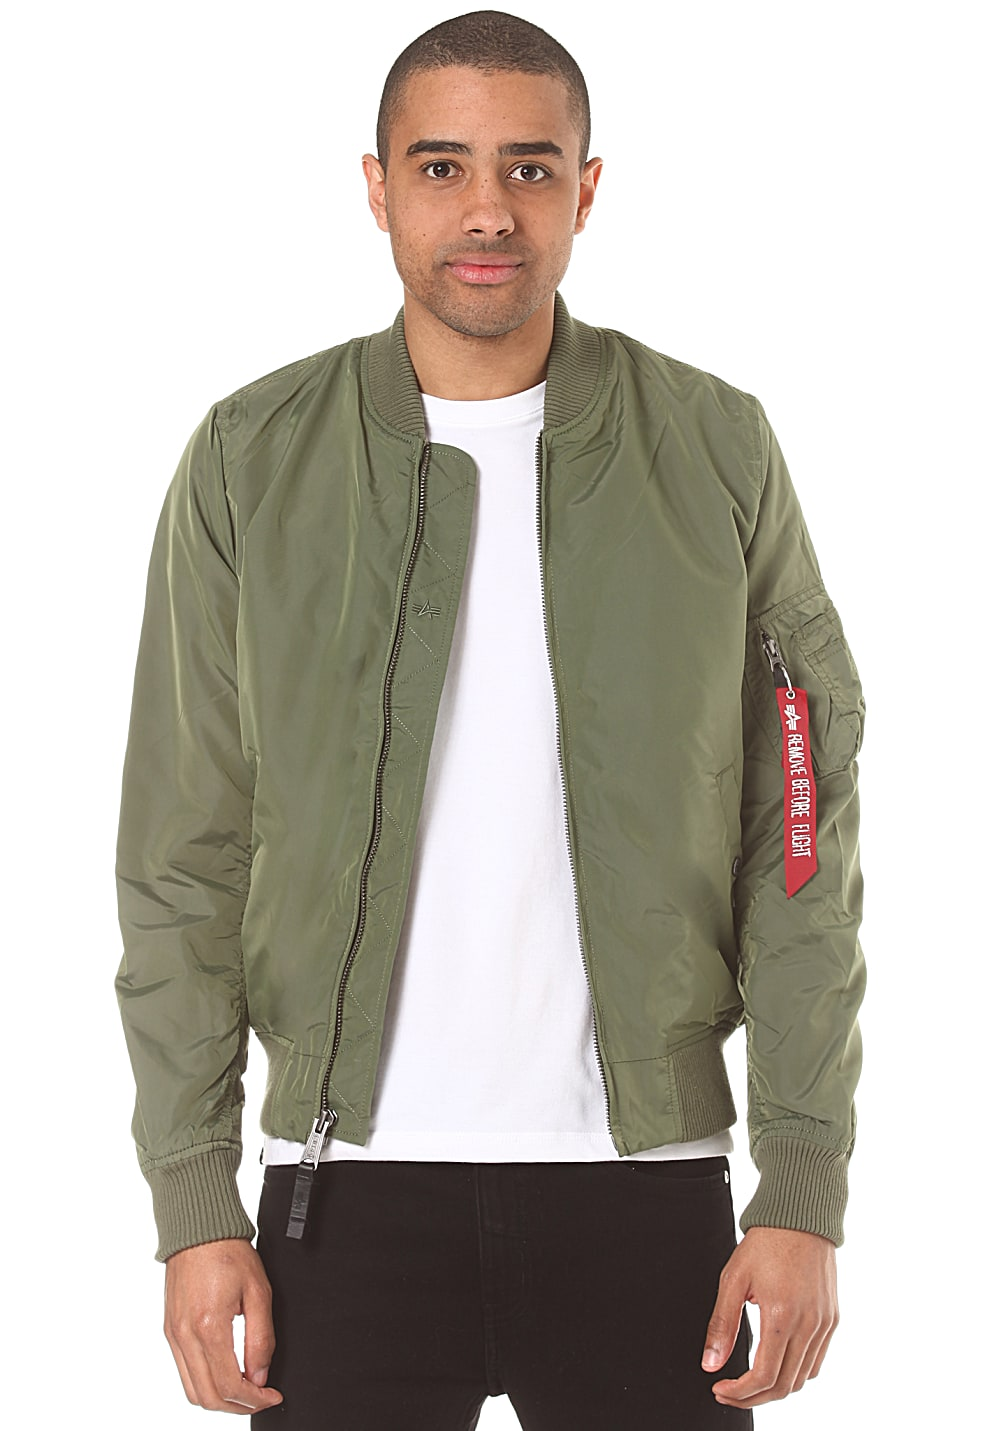 reputable site c318e 17022 Alpha Industries MA-1 TT - Jacke für Herren - Grün